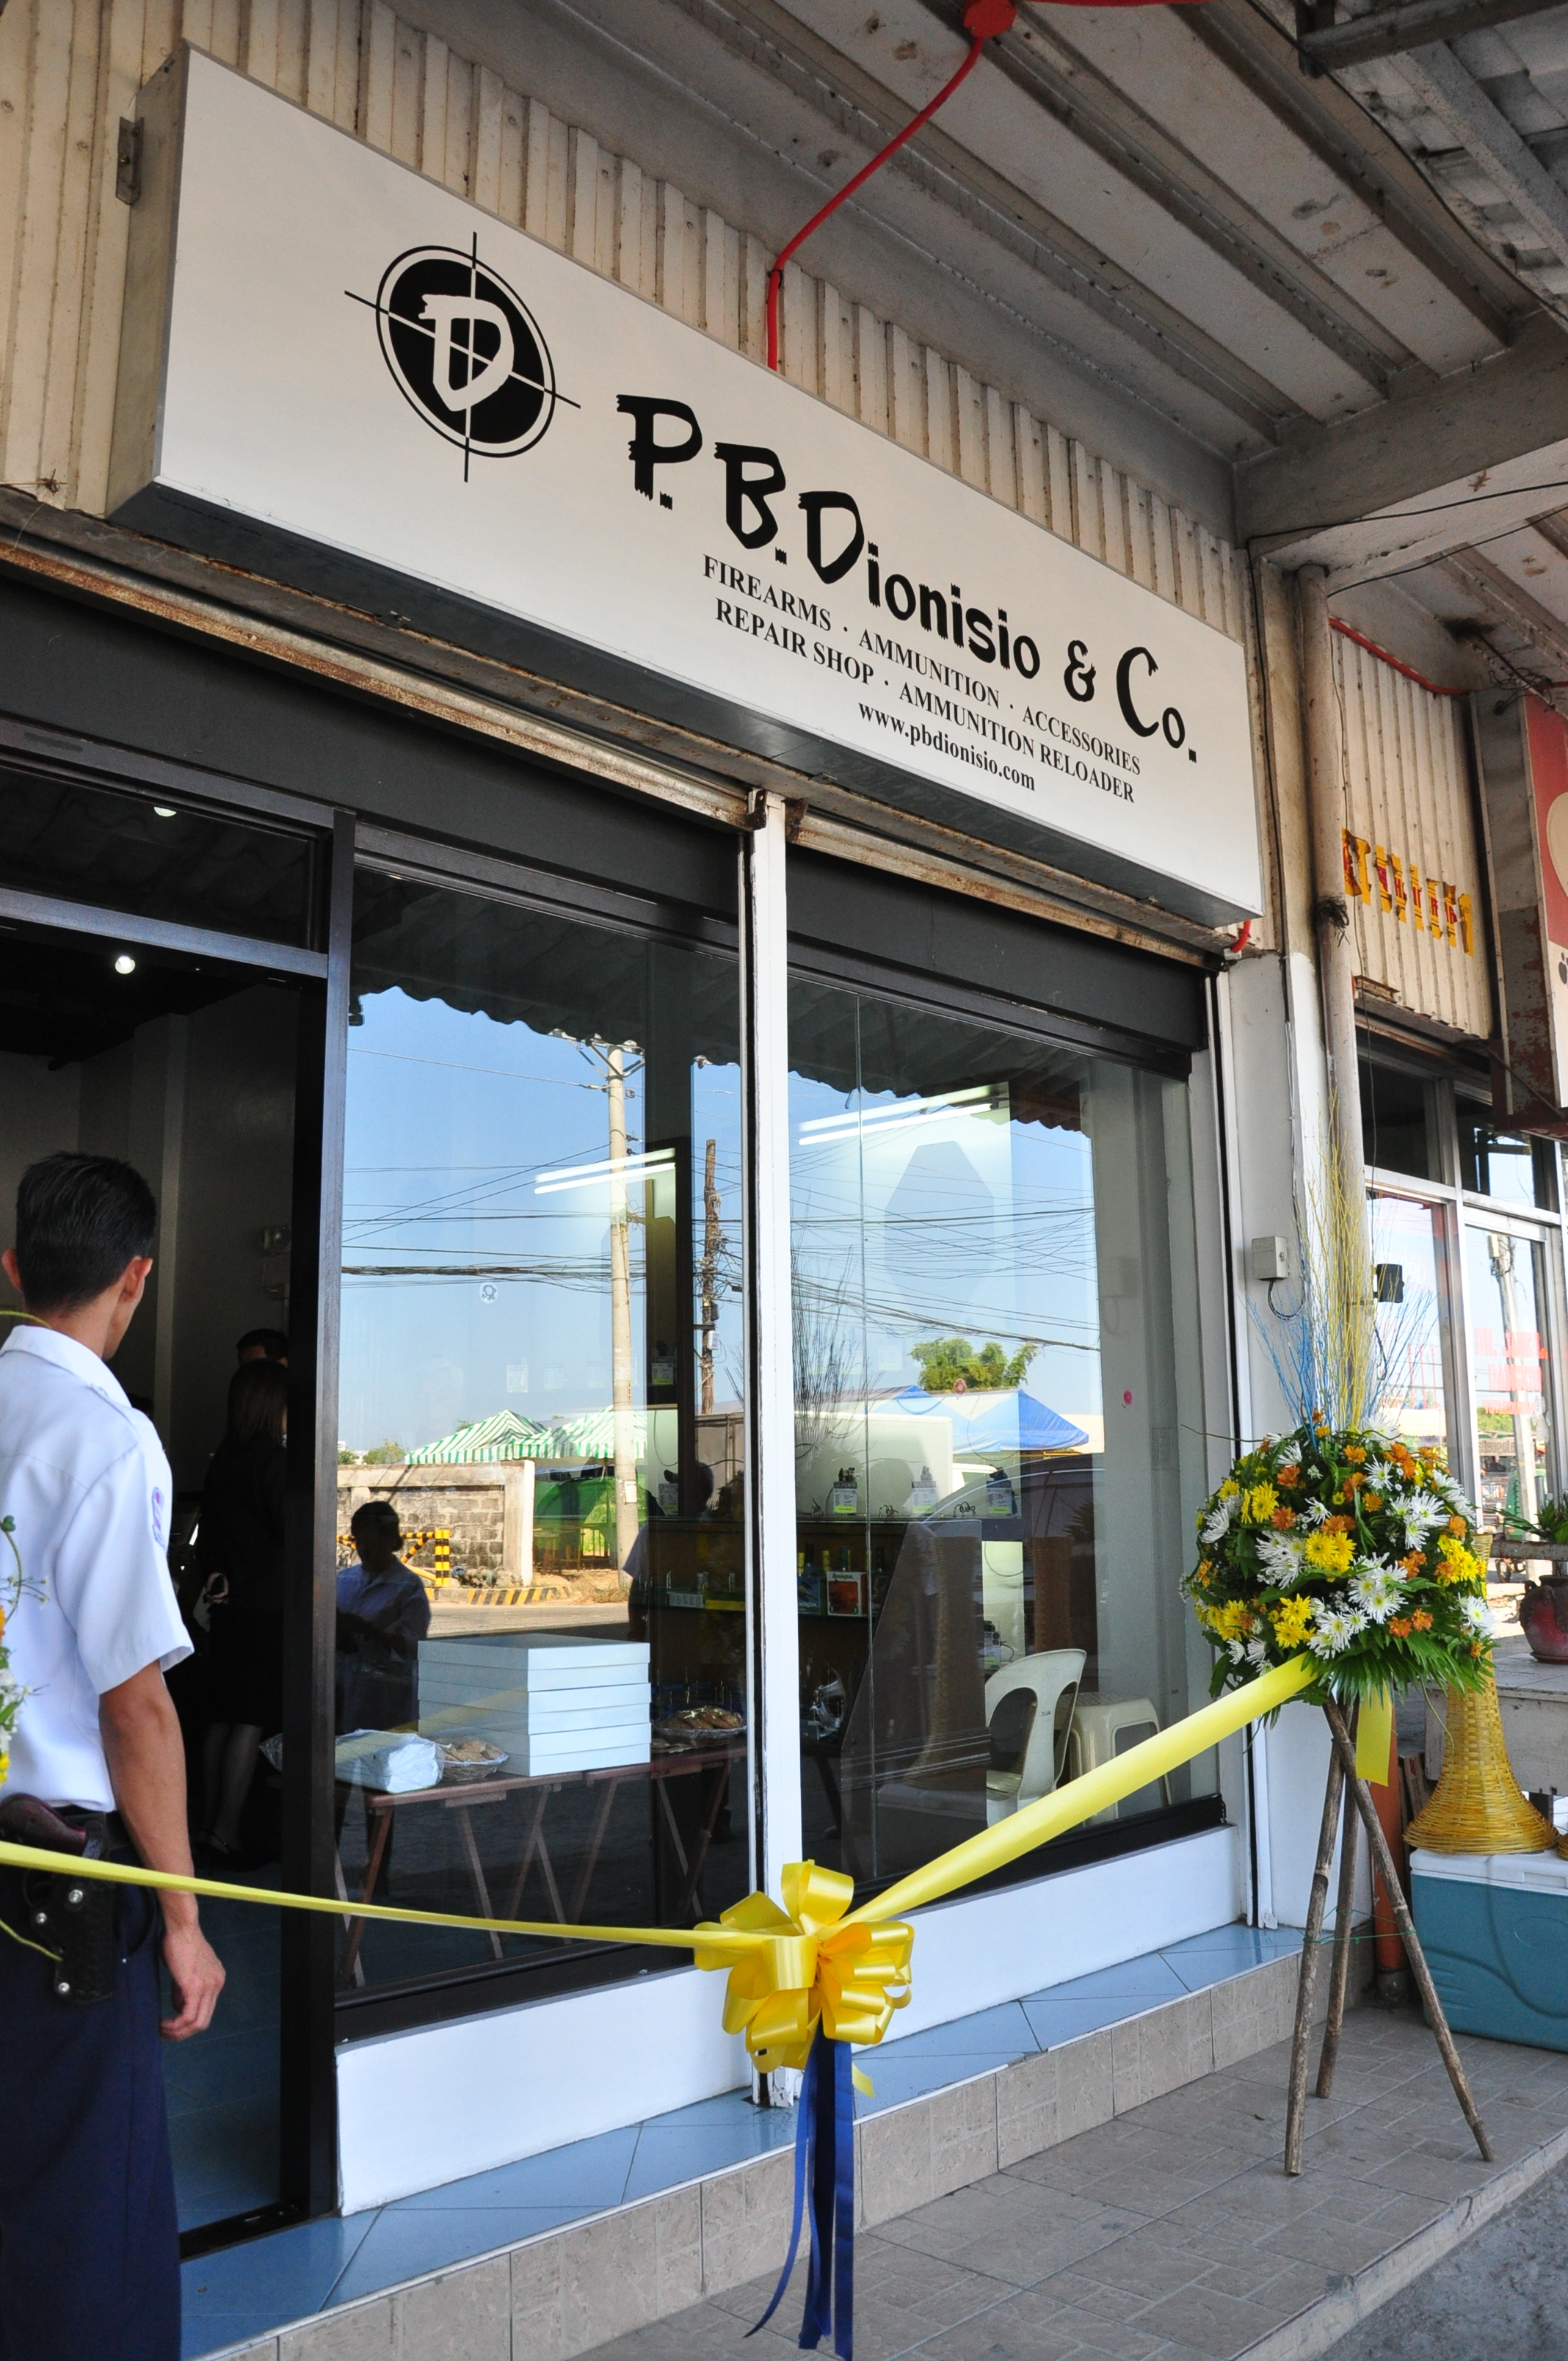 P.B.Dionisio & Co., Inc. Guns and Ammo Store in La Union, Philippines. Licensed Philippine Firearms Dealer.